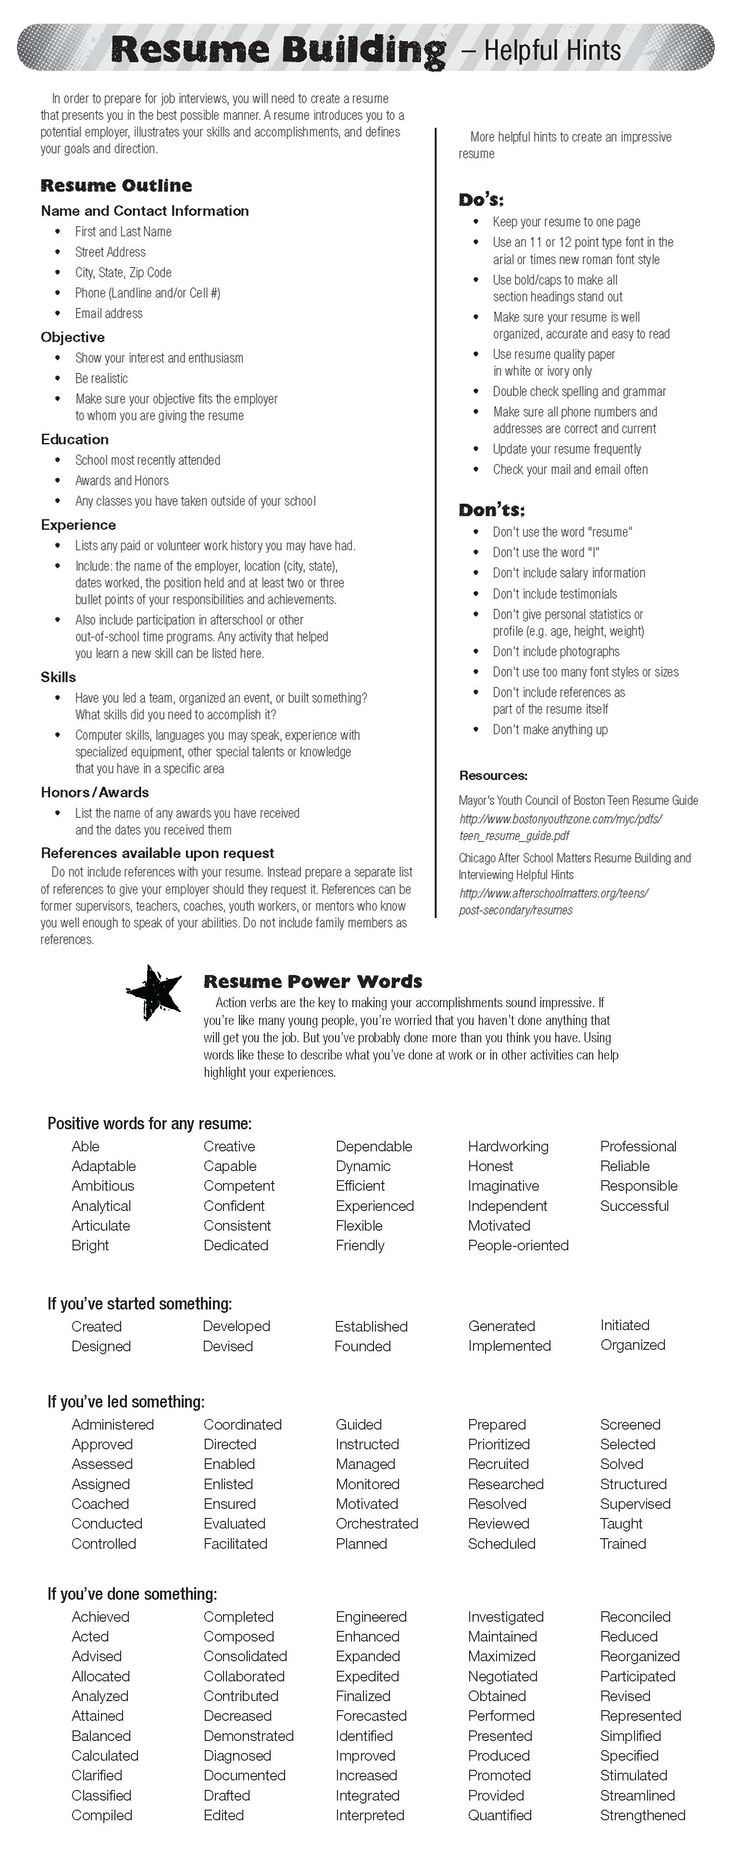 Opposenewapstandardsus  Mesmerizing  Ideas About Resume On Pinterest  Cv Format Resume Cv And  With Glamorous  Ideas About Resume On Pinterest  Cv Format Resume Cv And Resume Templates With Easy On The Eye Basic Resume Format Also Two Page Resume In Addition Example Of Cover Letter For Resume And Retail Sales Associate Resume As Well As Real Estate Resume Additionally Resume Builder Free Download From Pinterestcom With Opposenewapstandardsus  Glamorous  Ideas About Resume On Pinterest  Cv Format Resume Cv And  With Easy On The Eye  Ideas About Resume On Pinterest  Cv Format Resume Cv And Resume Templates And Mesmerizing Basic Resume Format Also Two Page Resume In Addition Example Of Cover Letter For Resume From Pinterestcom